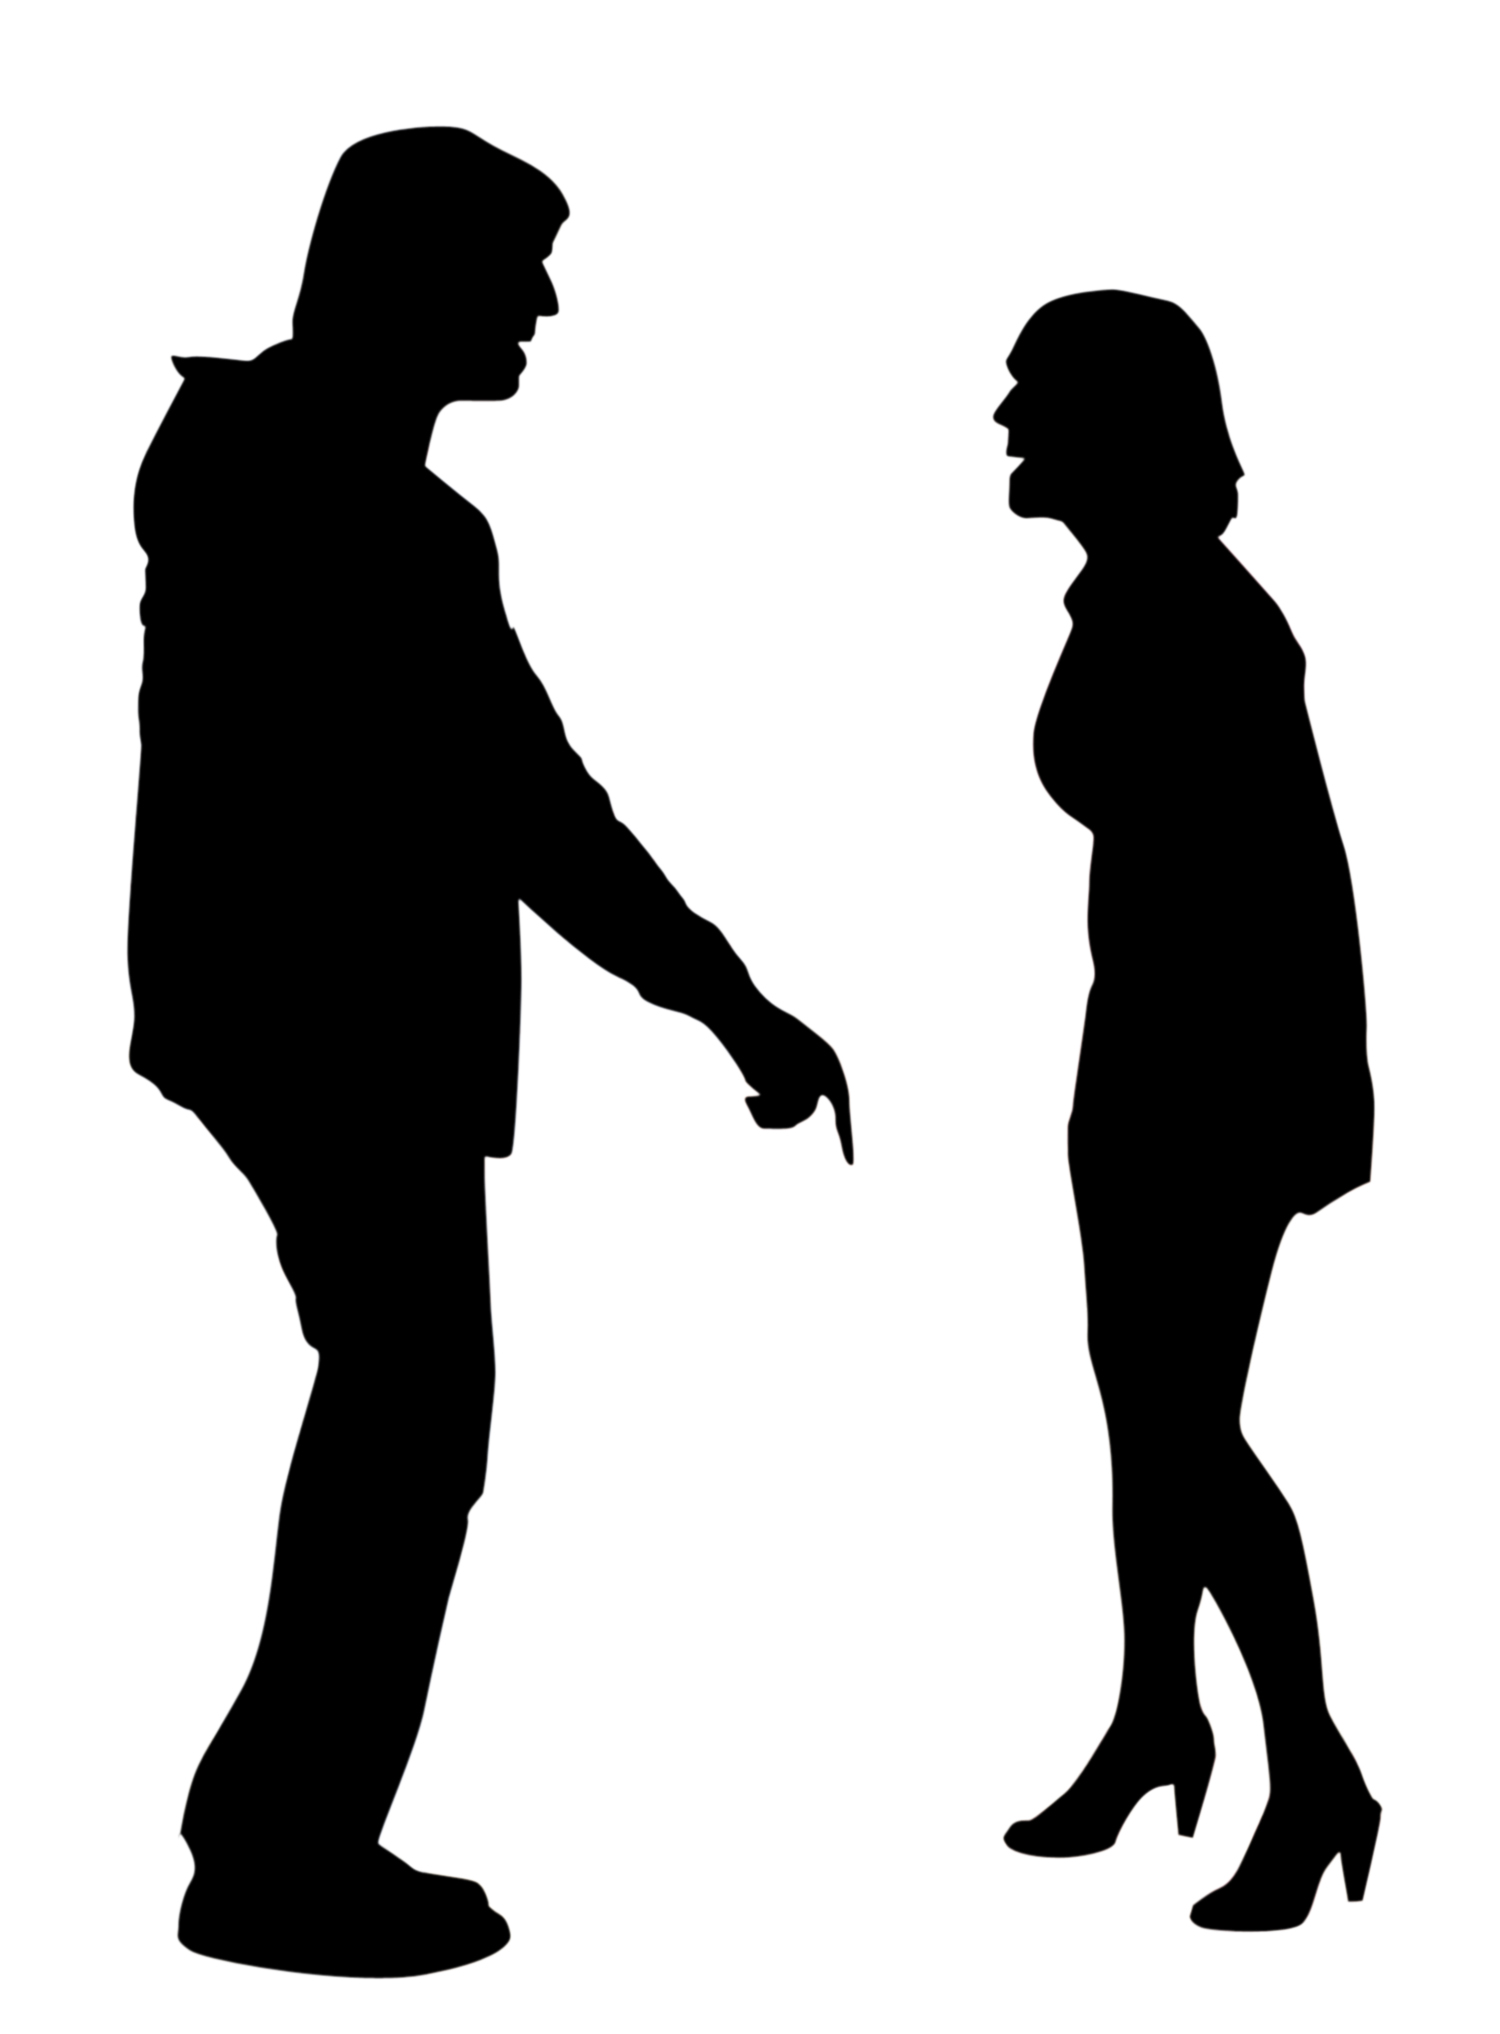 Communication Skills for Arguing: It's All About Your Approach